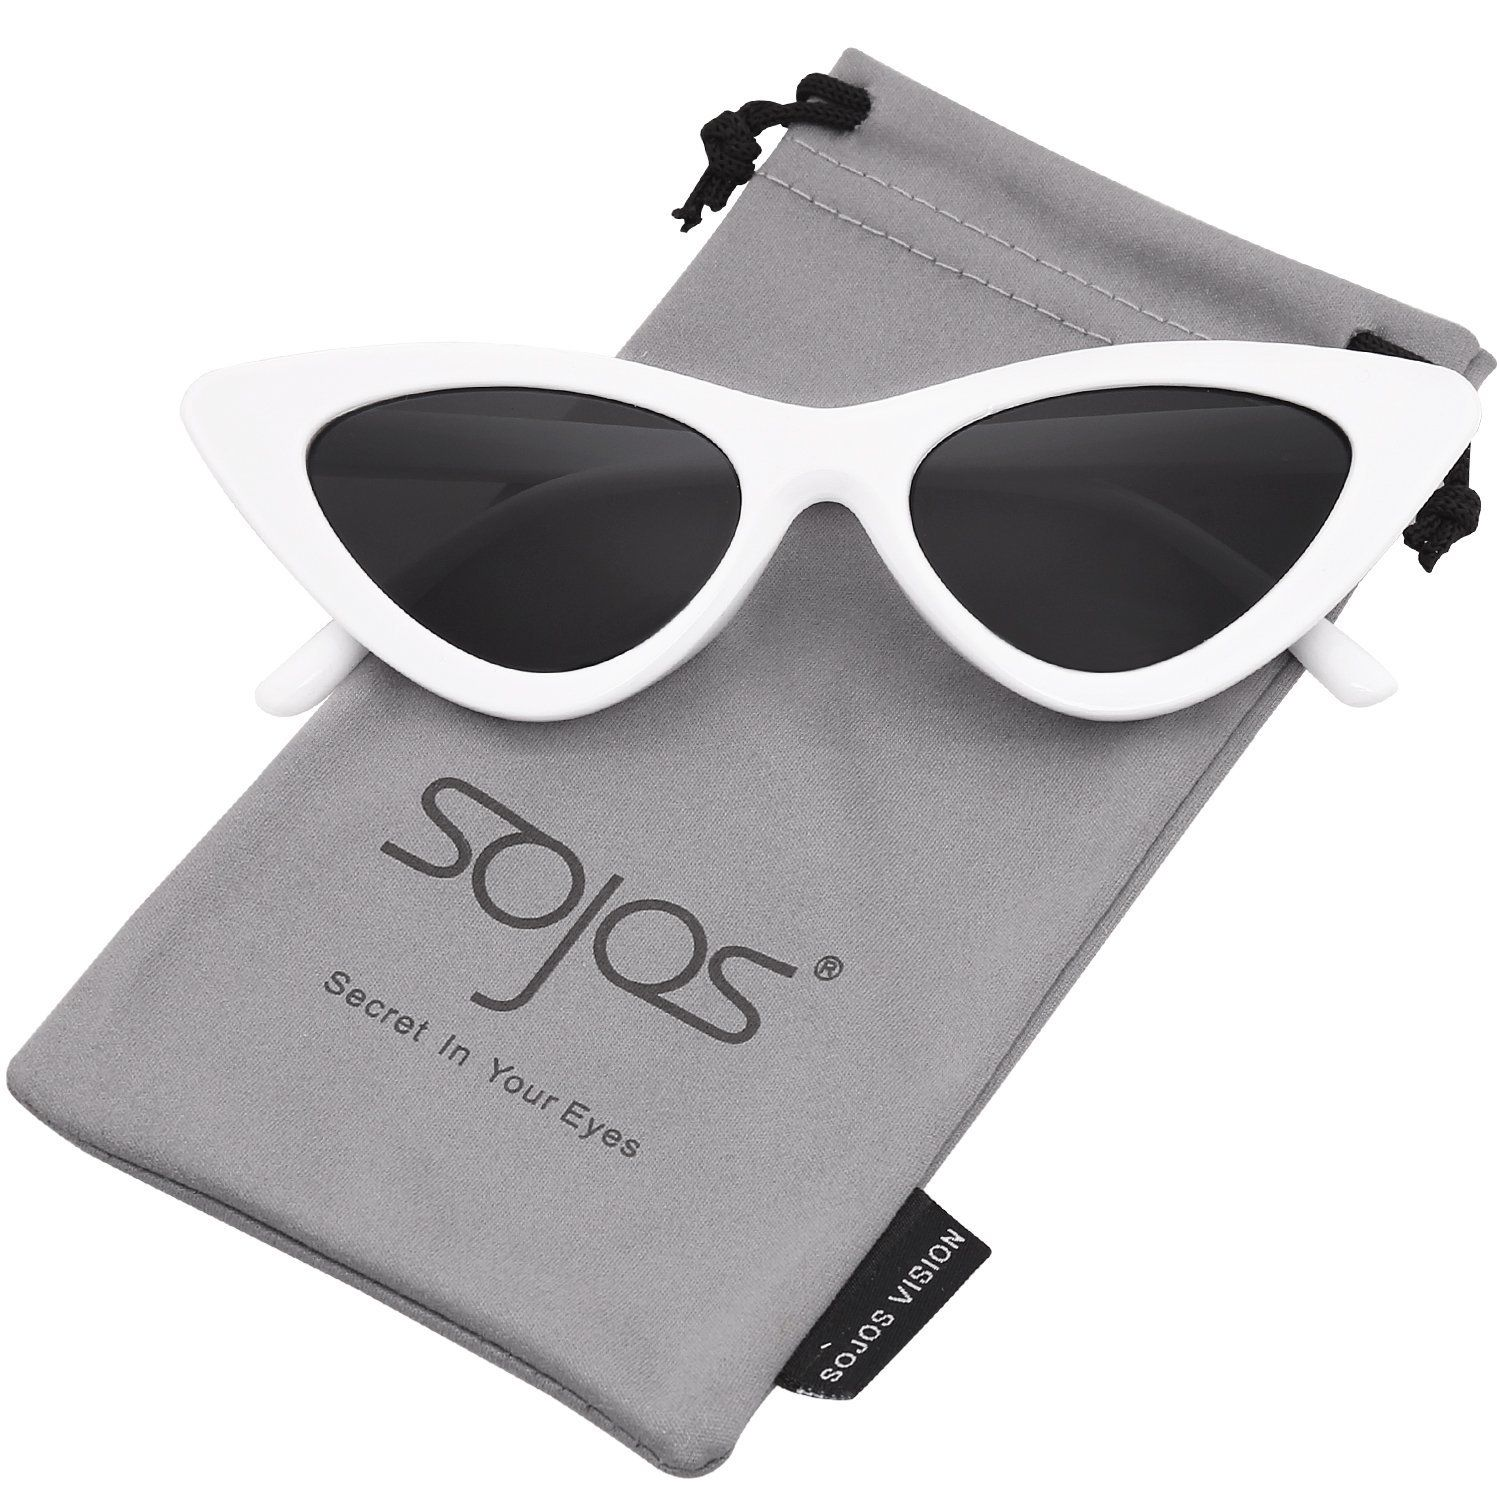 SOJOS Clout Goggles Cat Eye Sunglasses Vintage Mod Style